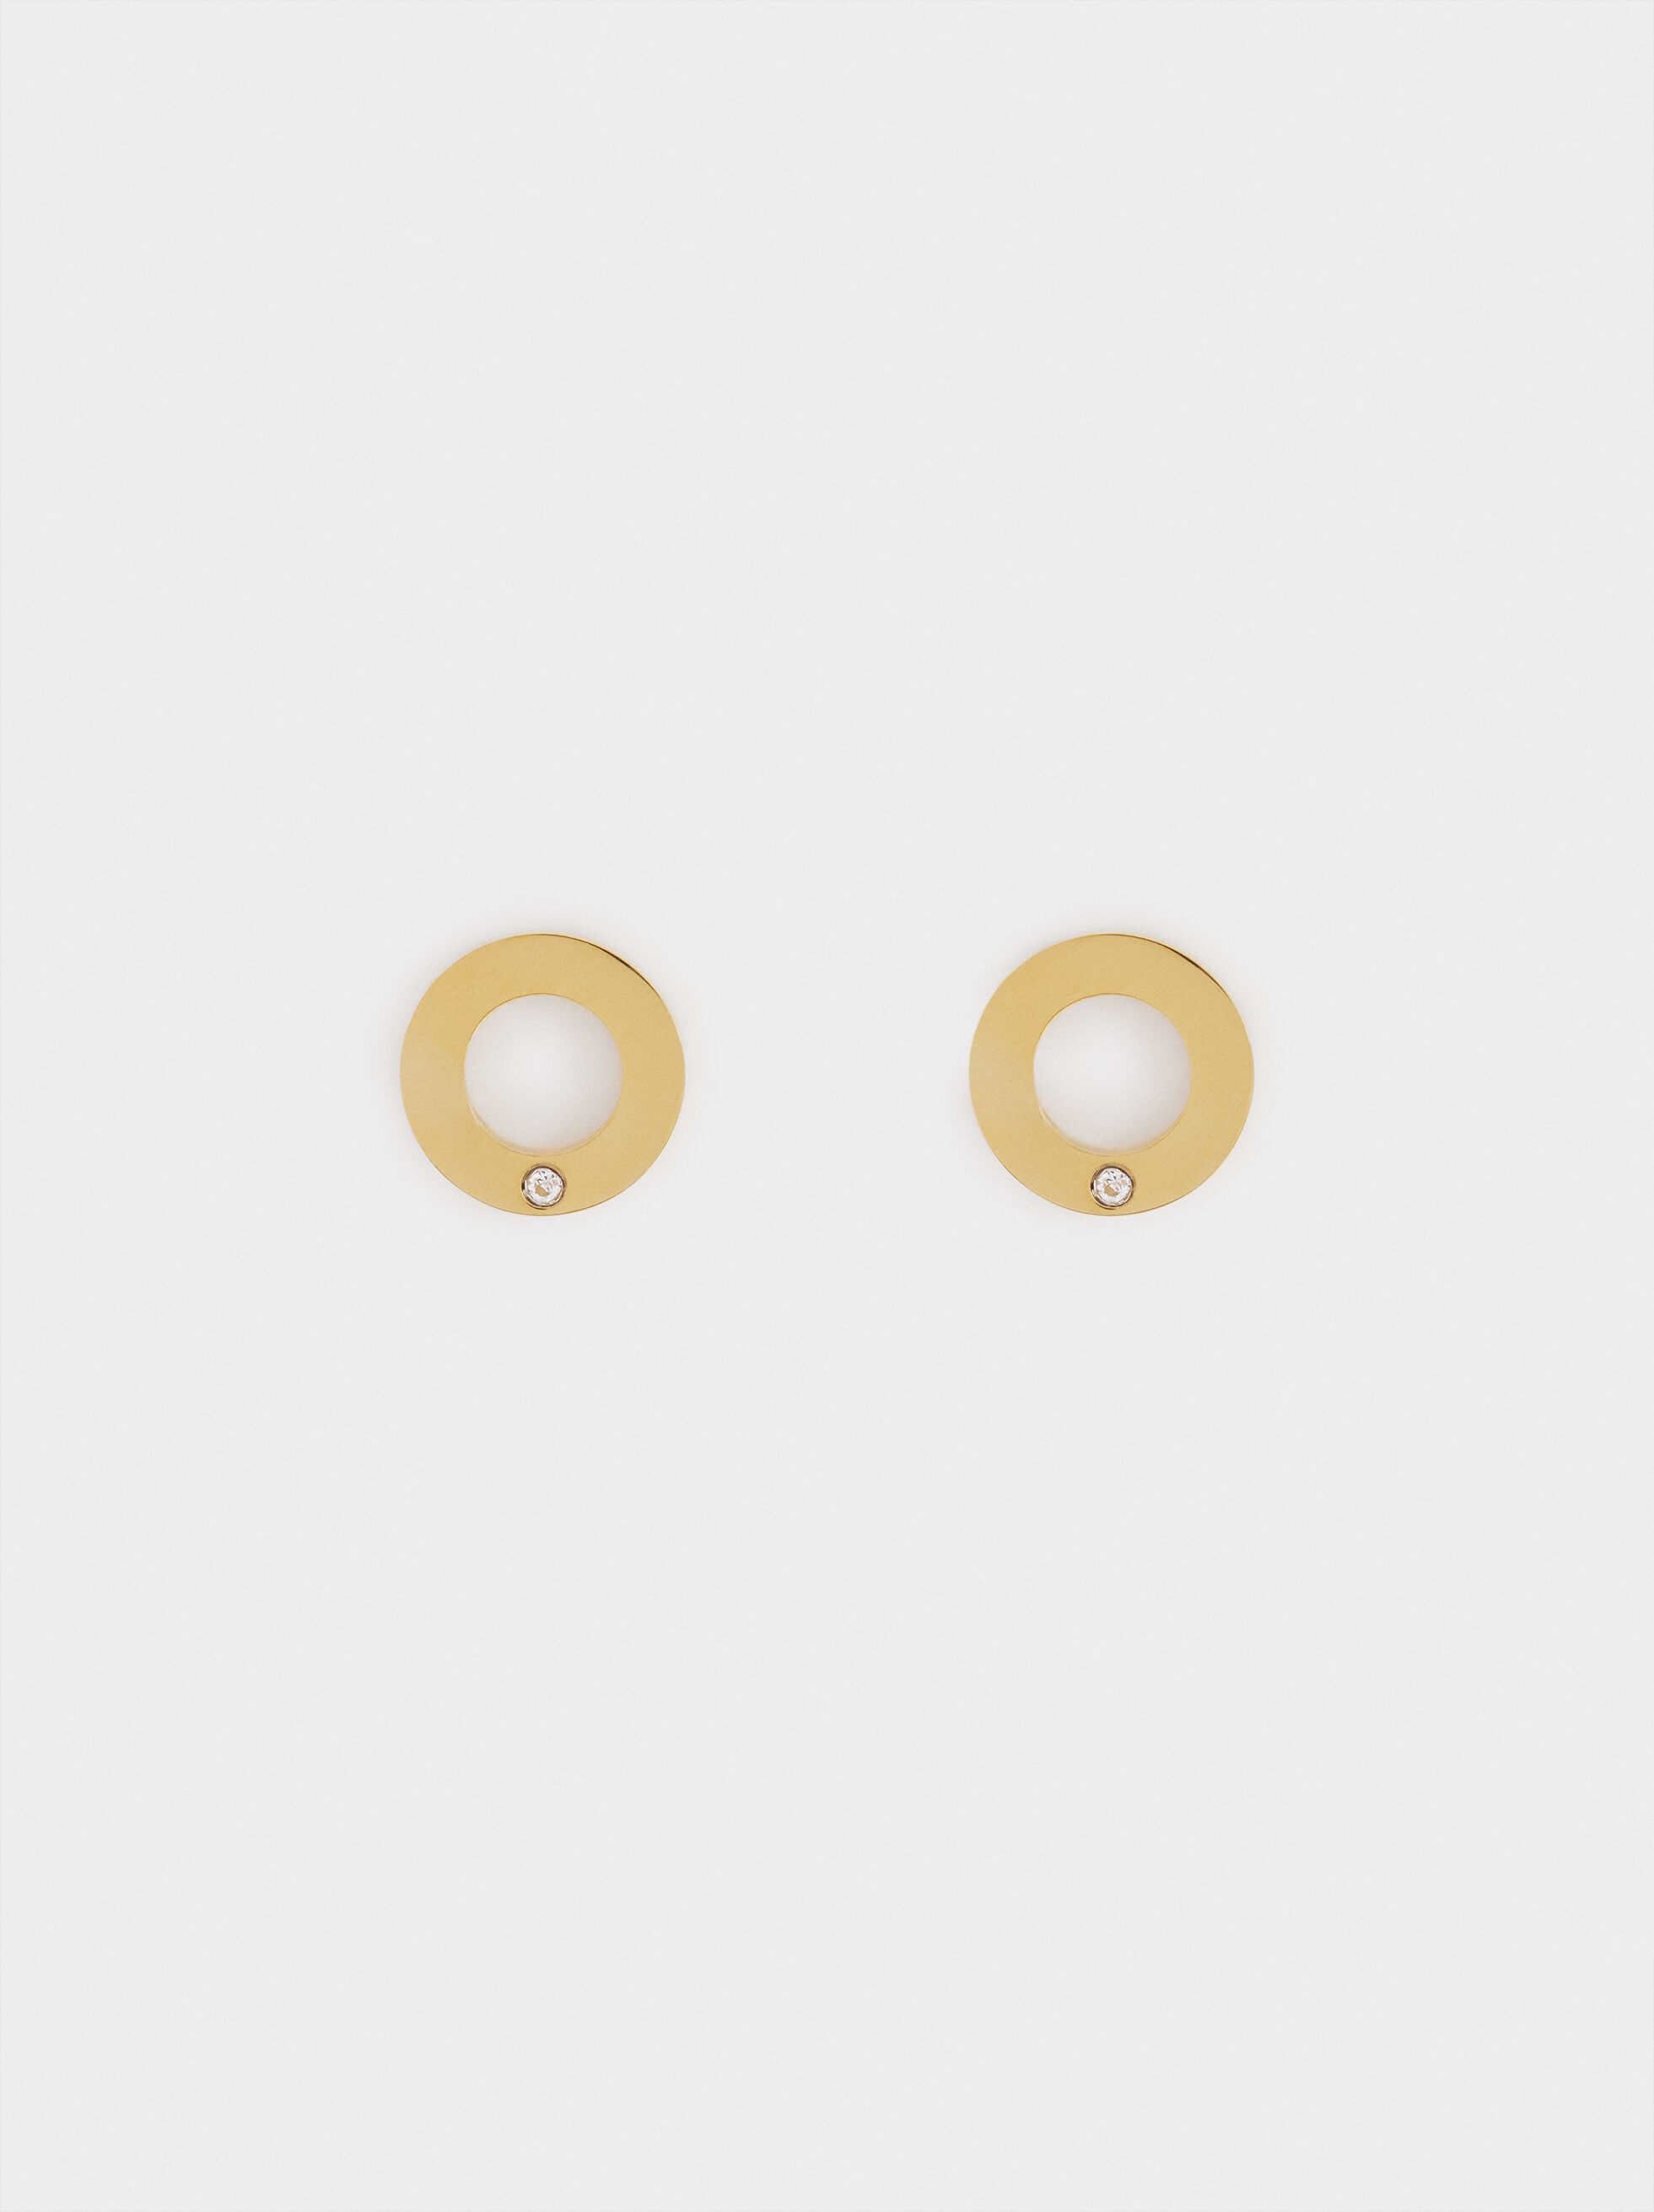 Small Silver-Plated Stainless Steel Circular Earrings, , hi-res